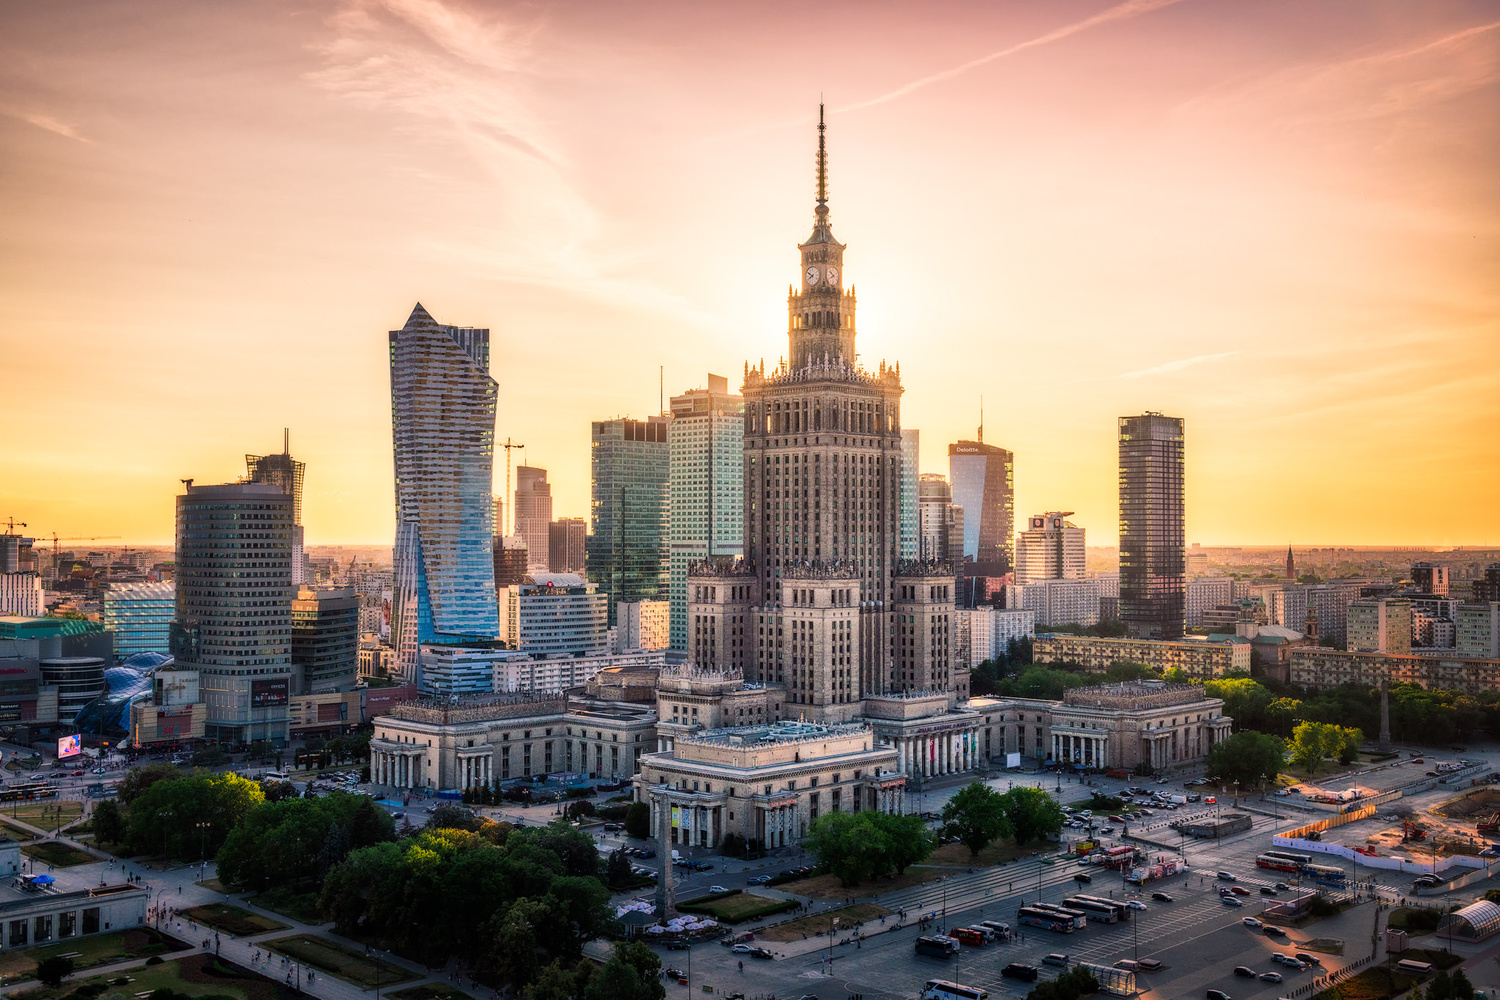 Warsaw Skyline at Sunset | Warsaw, Poland by Nico Trinkhaus